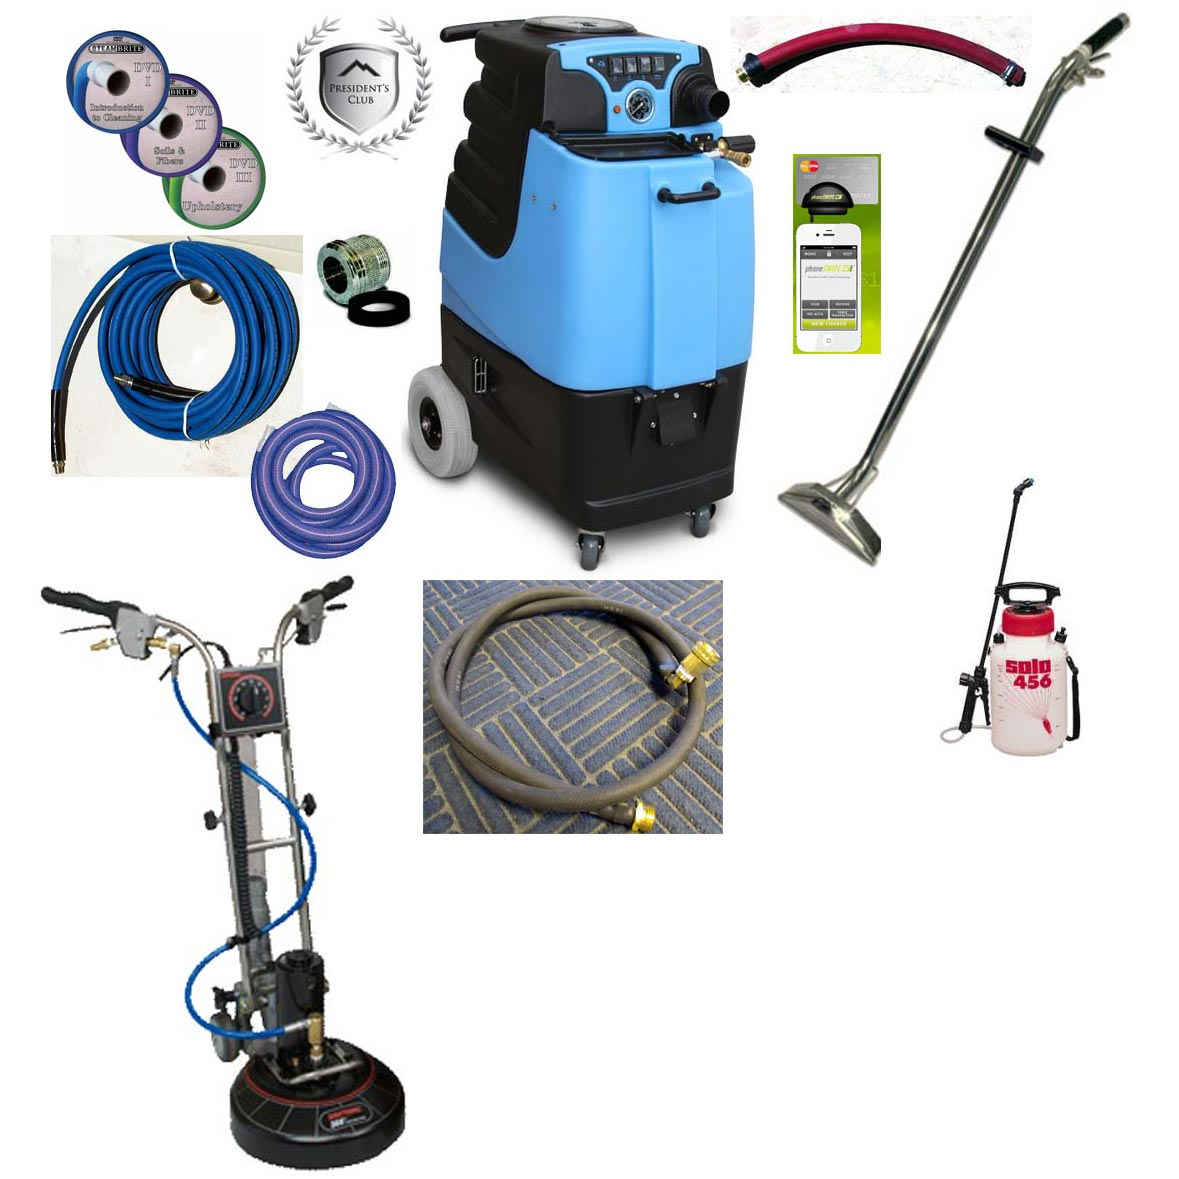 Rotovac 360i + Mytee LTD5 15gal 500psi Dual 3 Stage Vacs Auto Fill Auto Dump Carpet Upholstery Extractor Basic Starter Package